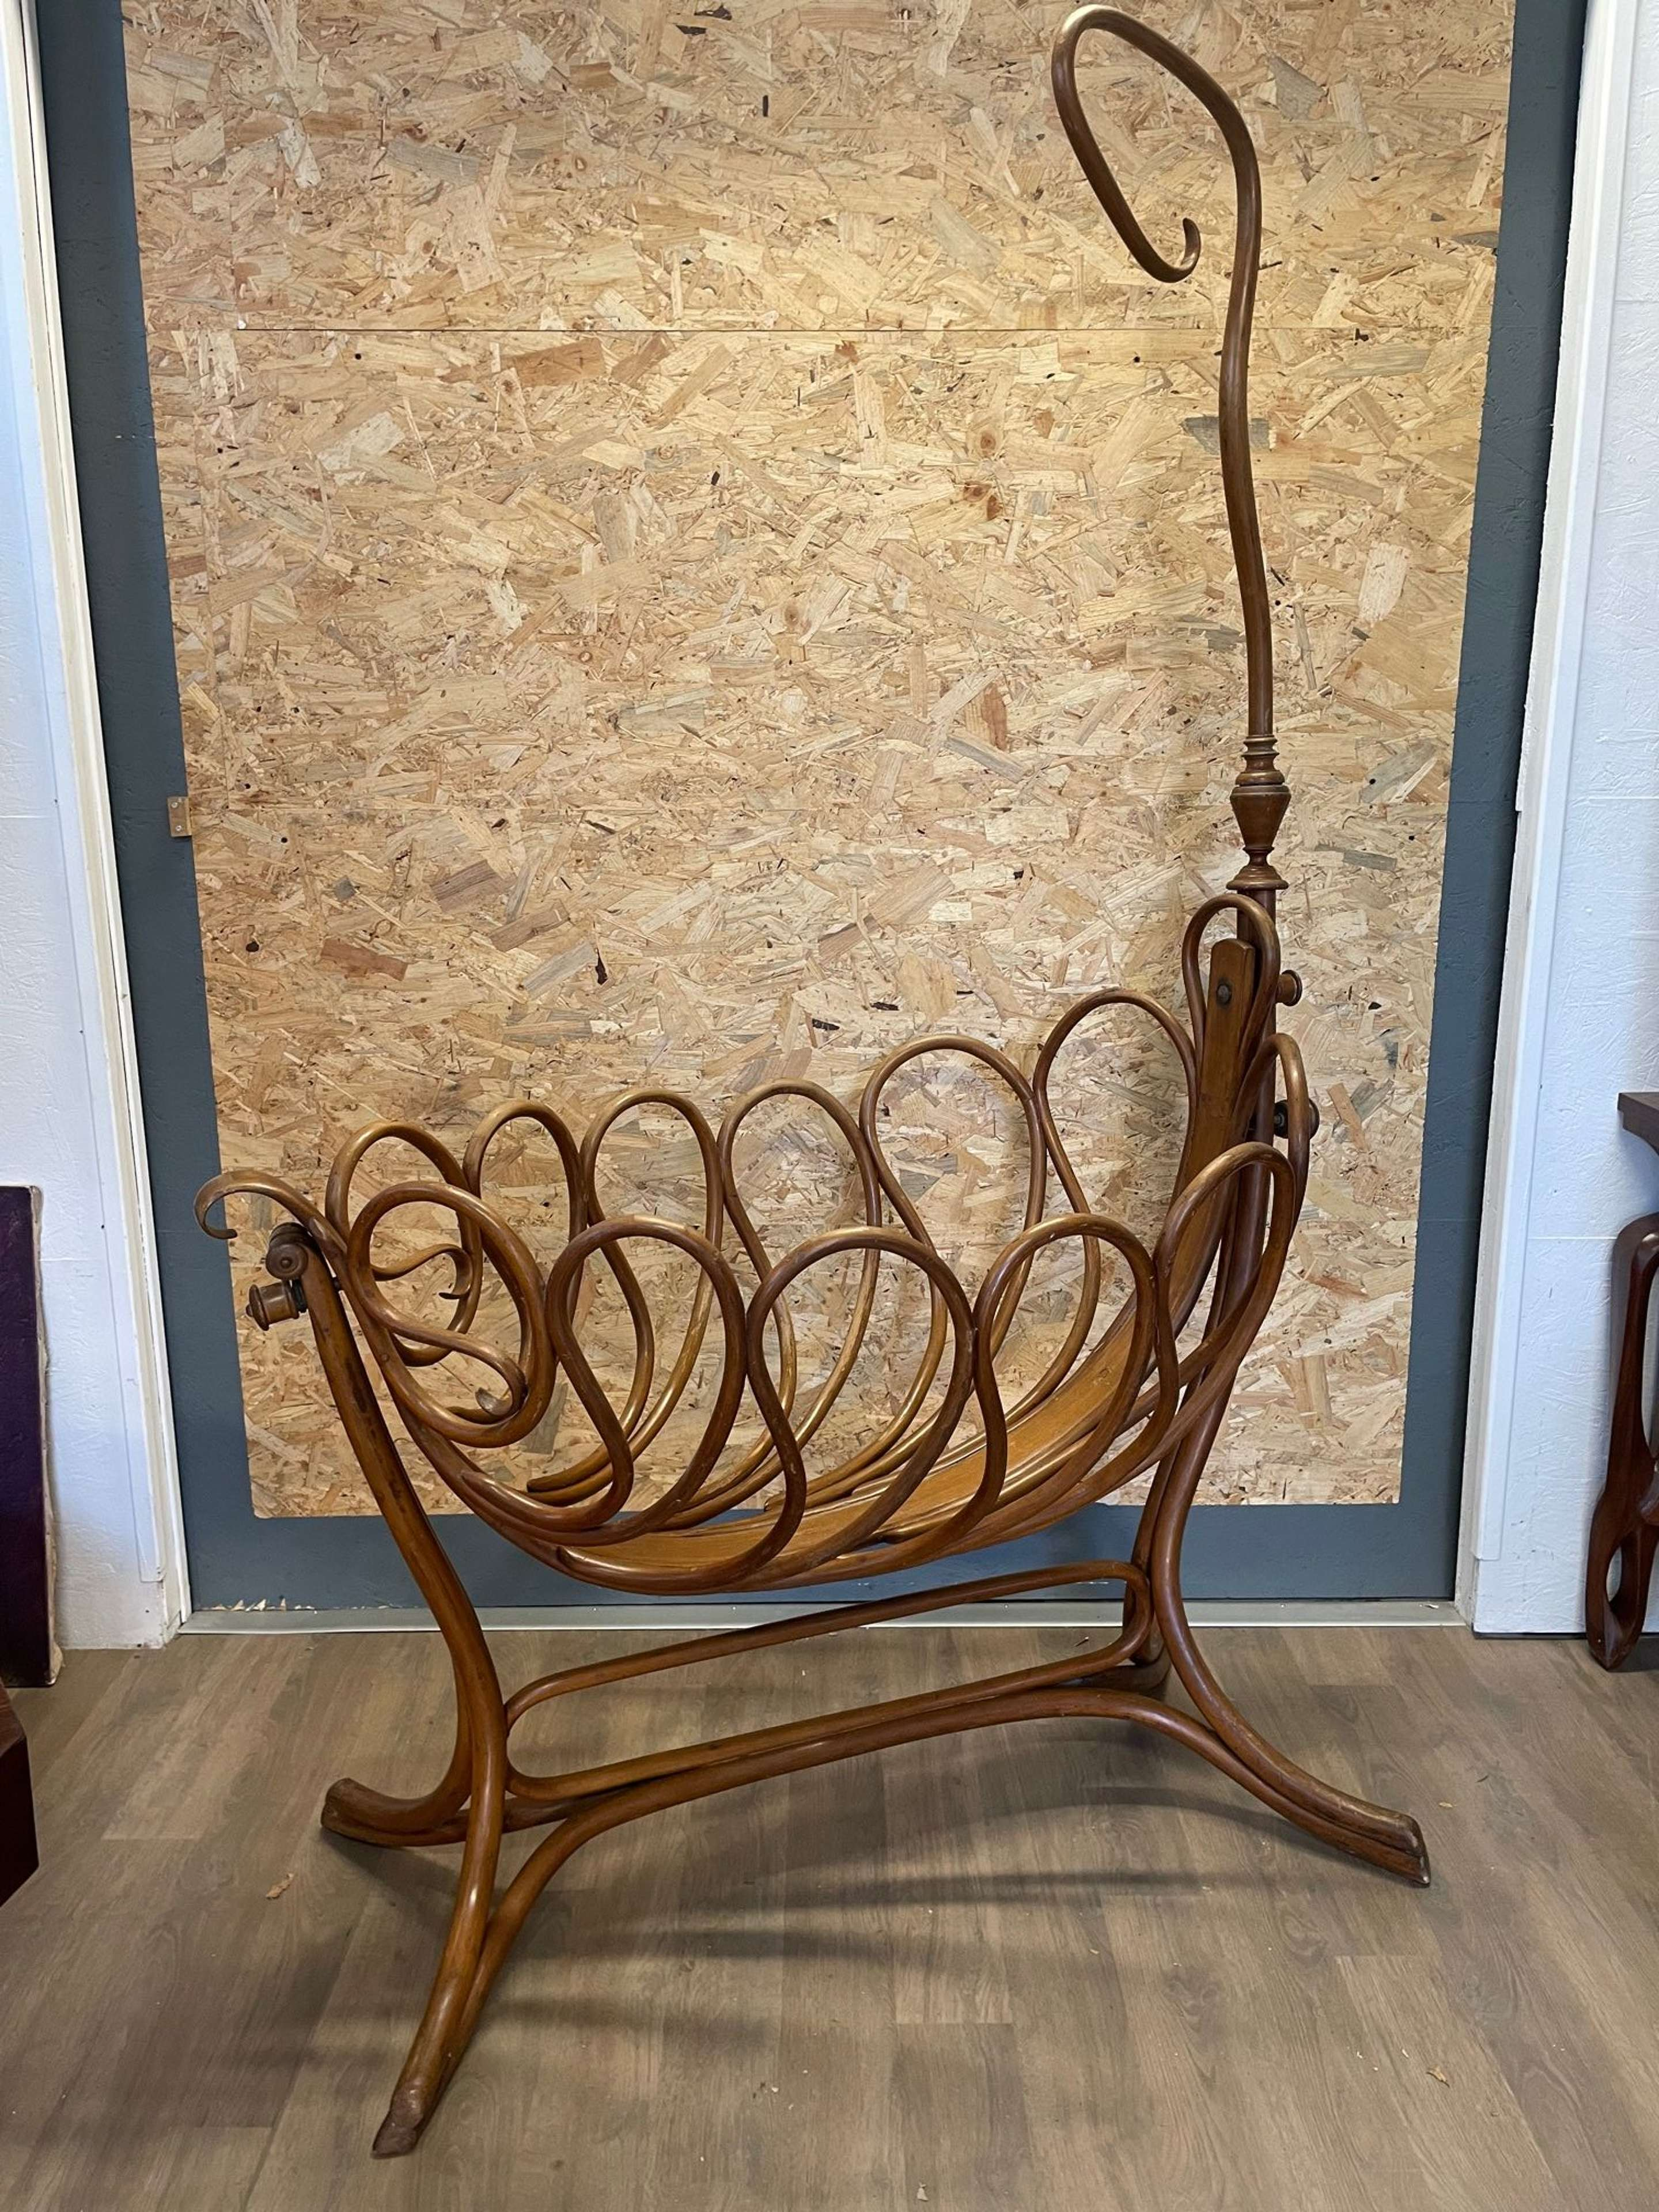 Early 20th century French Bentwood Thonet Craddle, 1900s